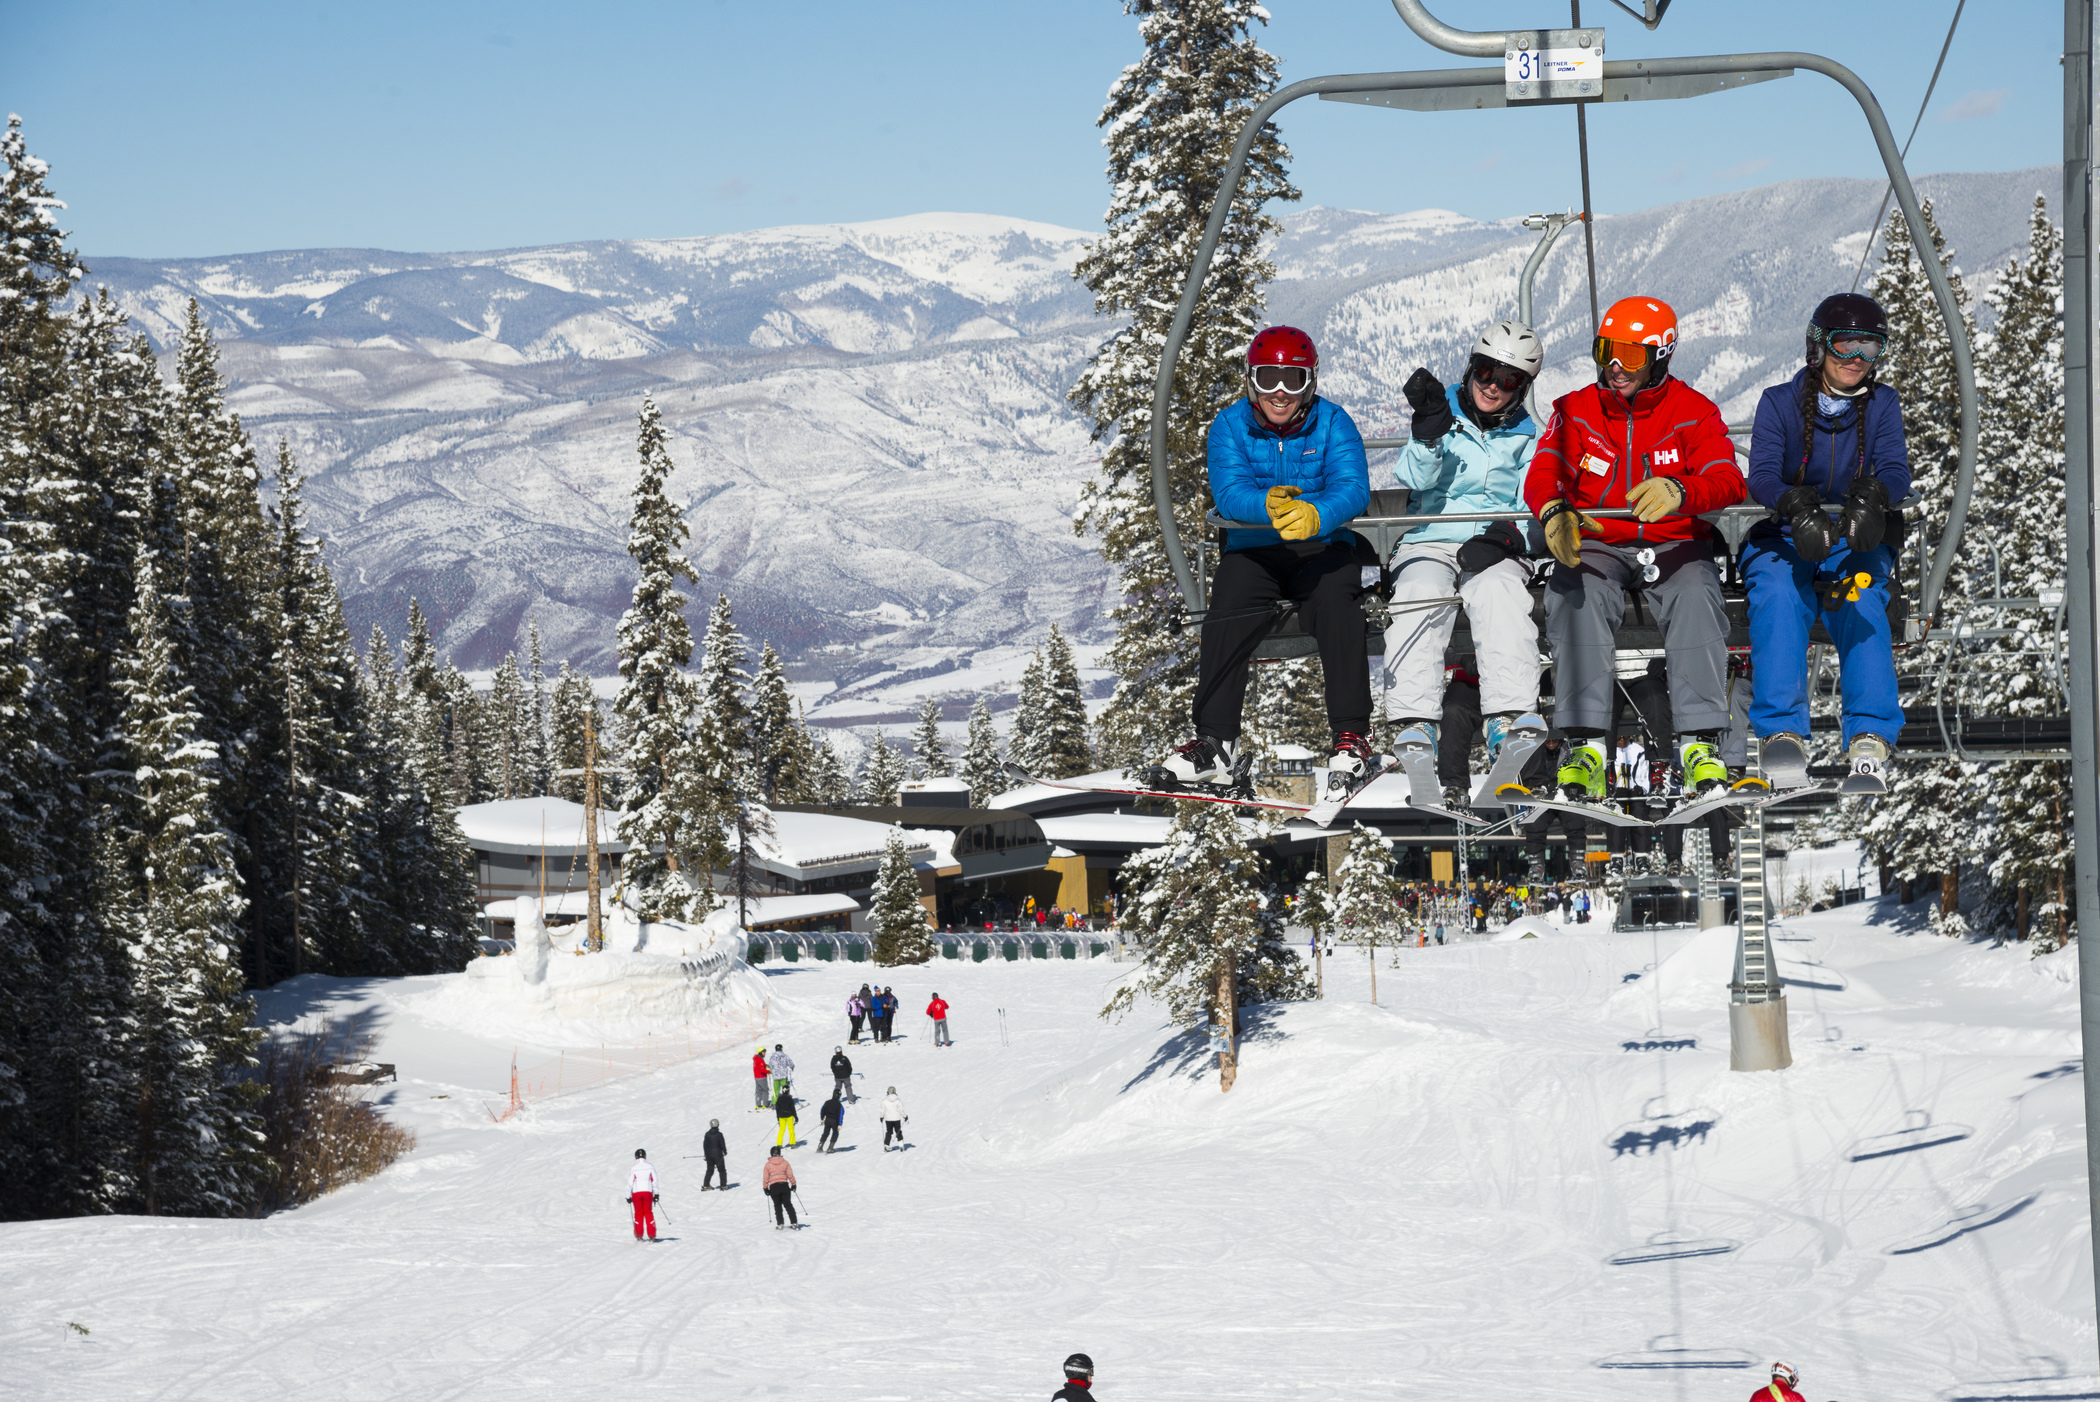 holiday smart safebee how crop to avoid accidents lift ski chair